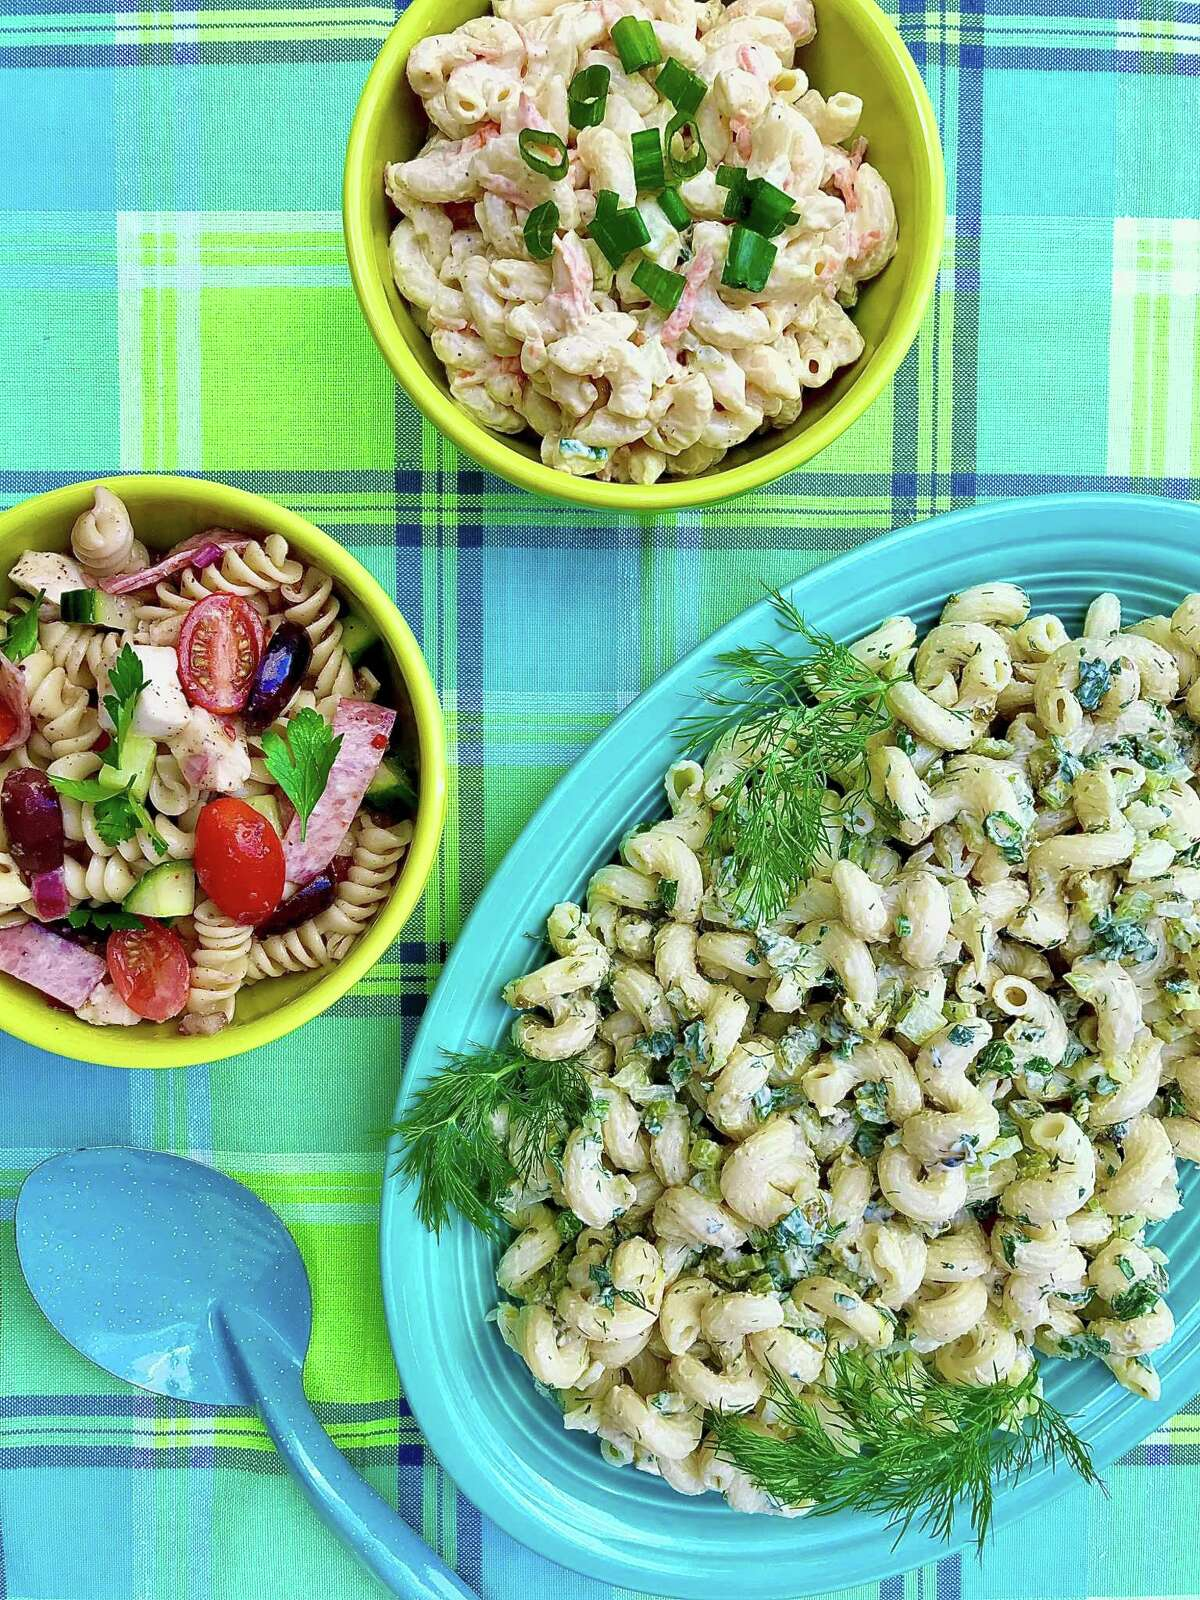 Macaroni and pasta salads clockwise from top, Hawaiian Macaroni Salad, Macaroni Salad with Lemon and Herbs, and Easiest Pasta Salad.